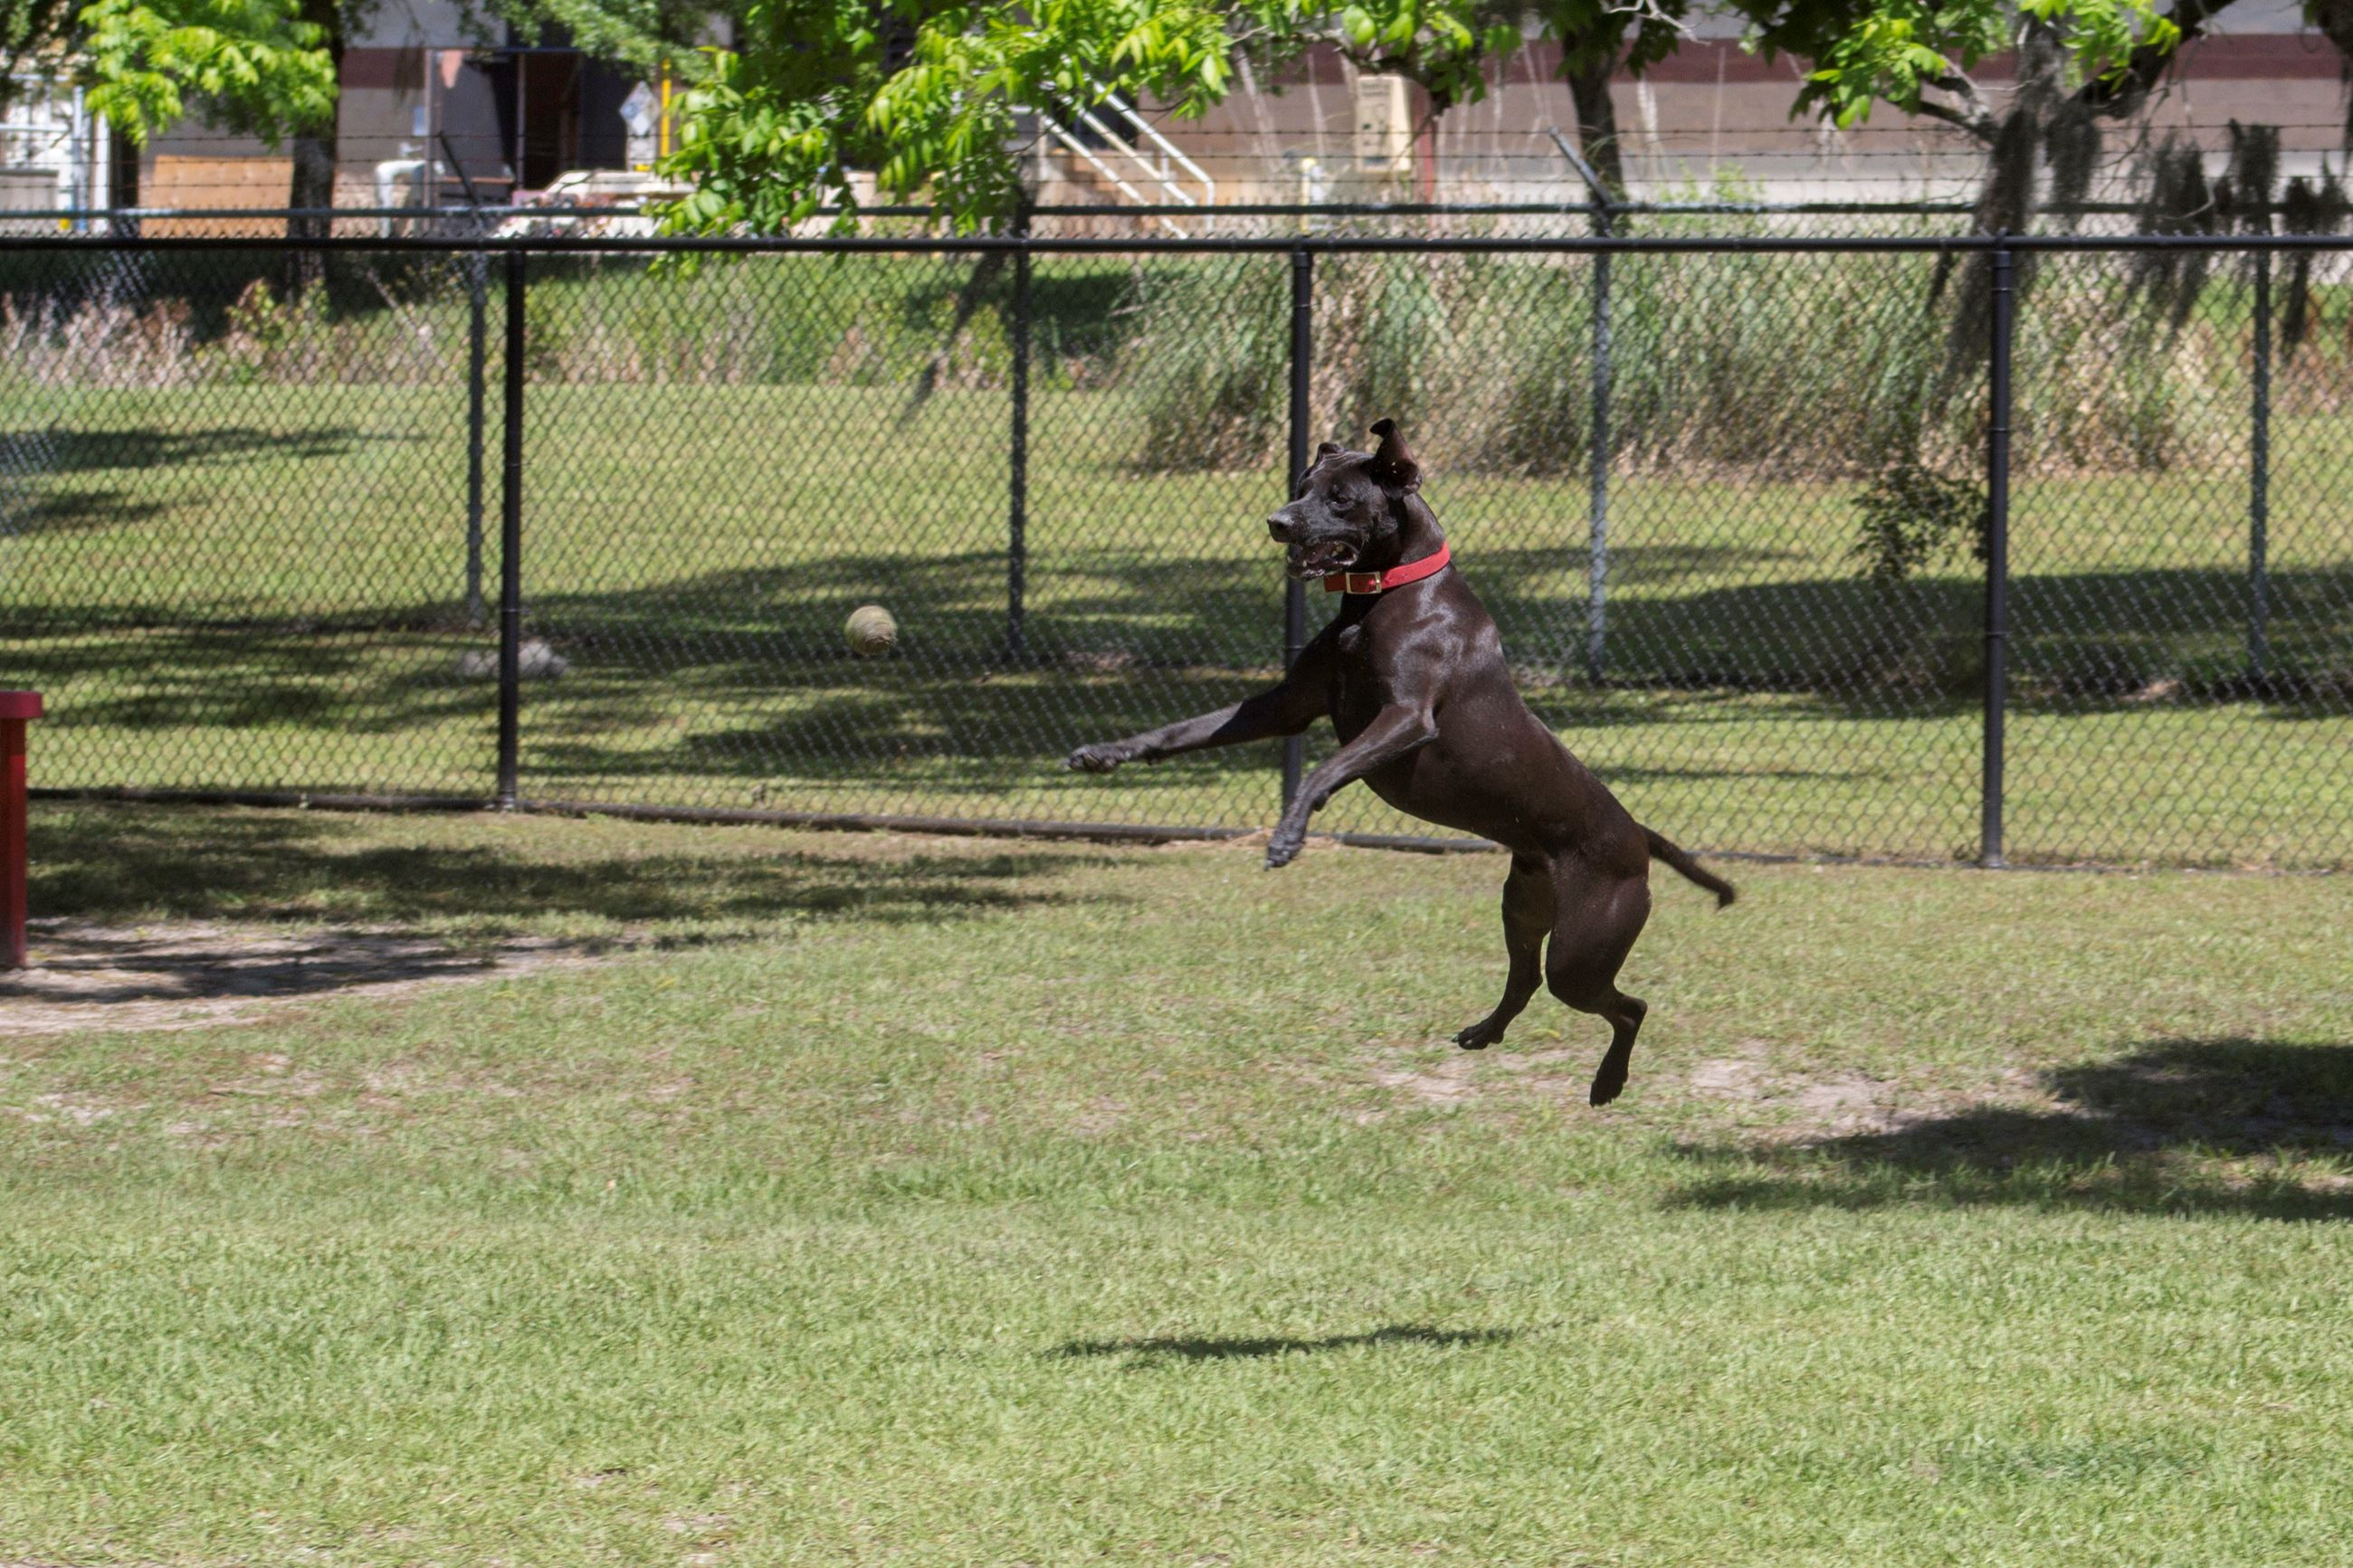 Image of dog jumping to catch a tennis ball.